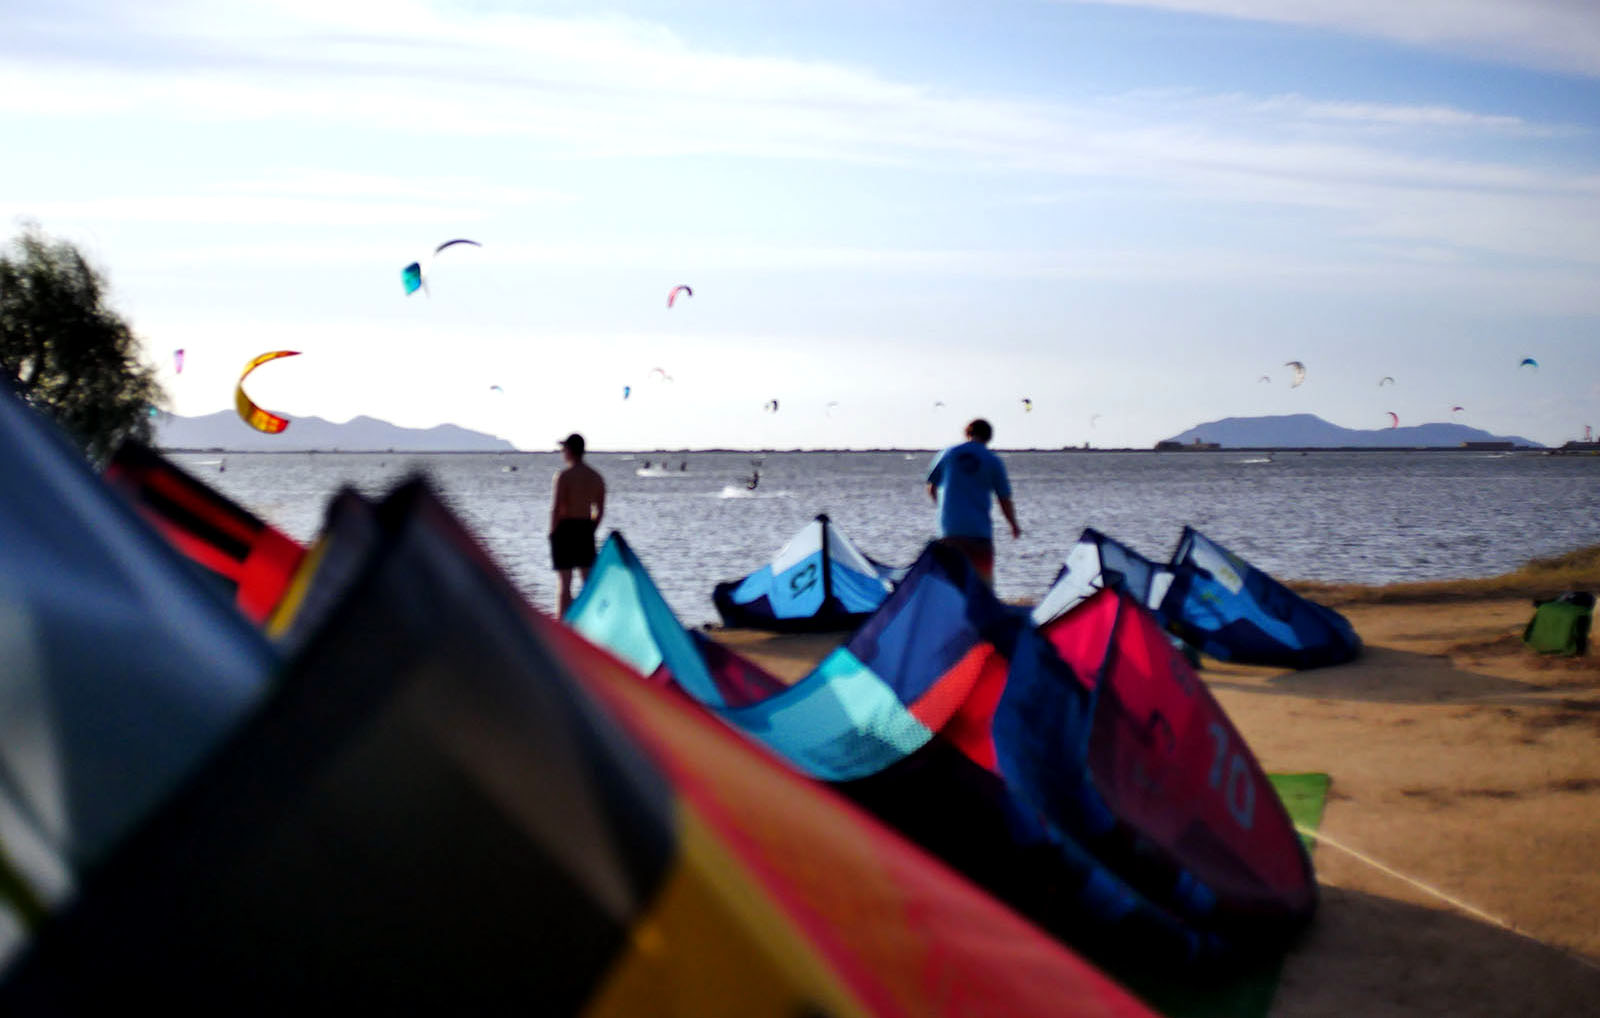 Kites lined up at level Up kite centre, Lo Stagnone